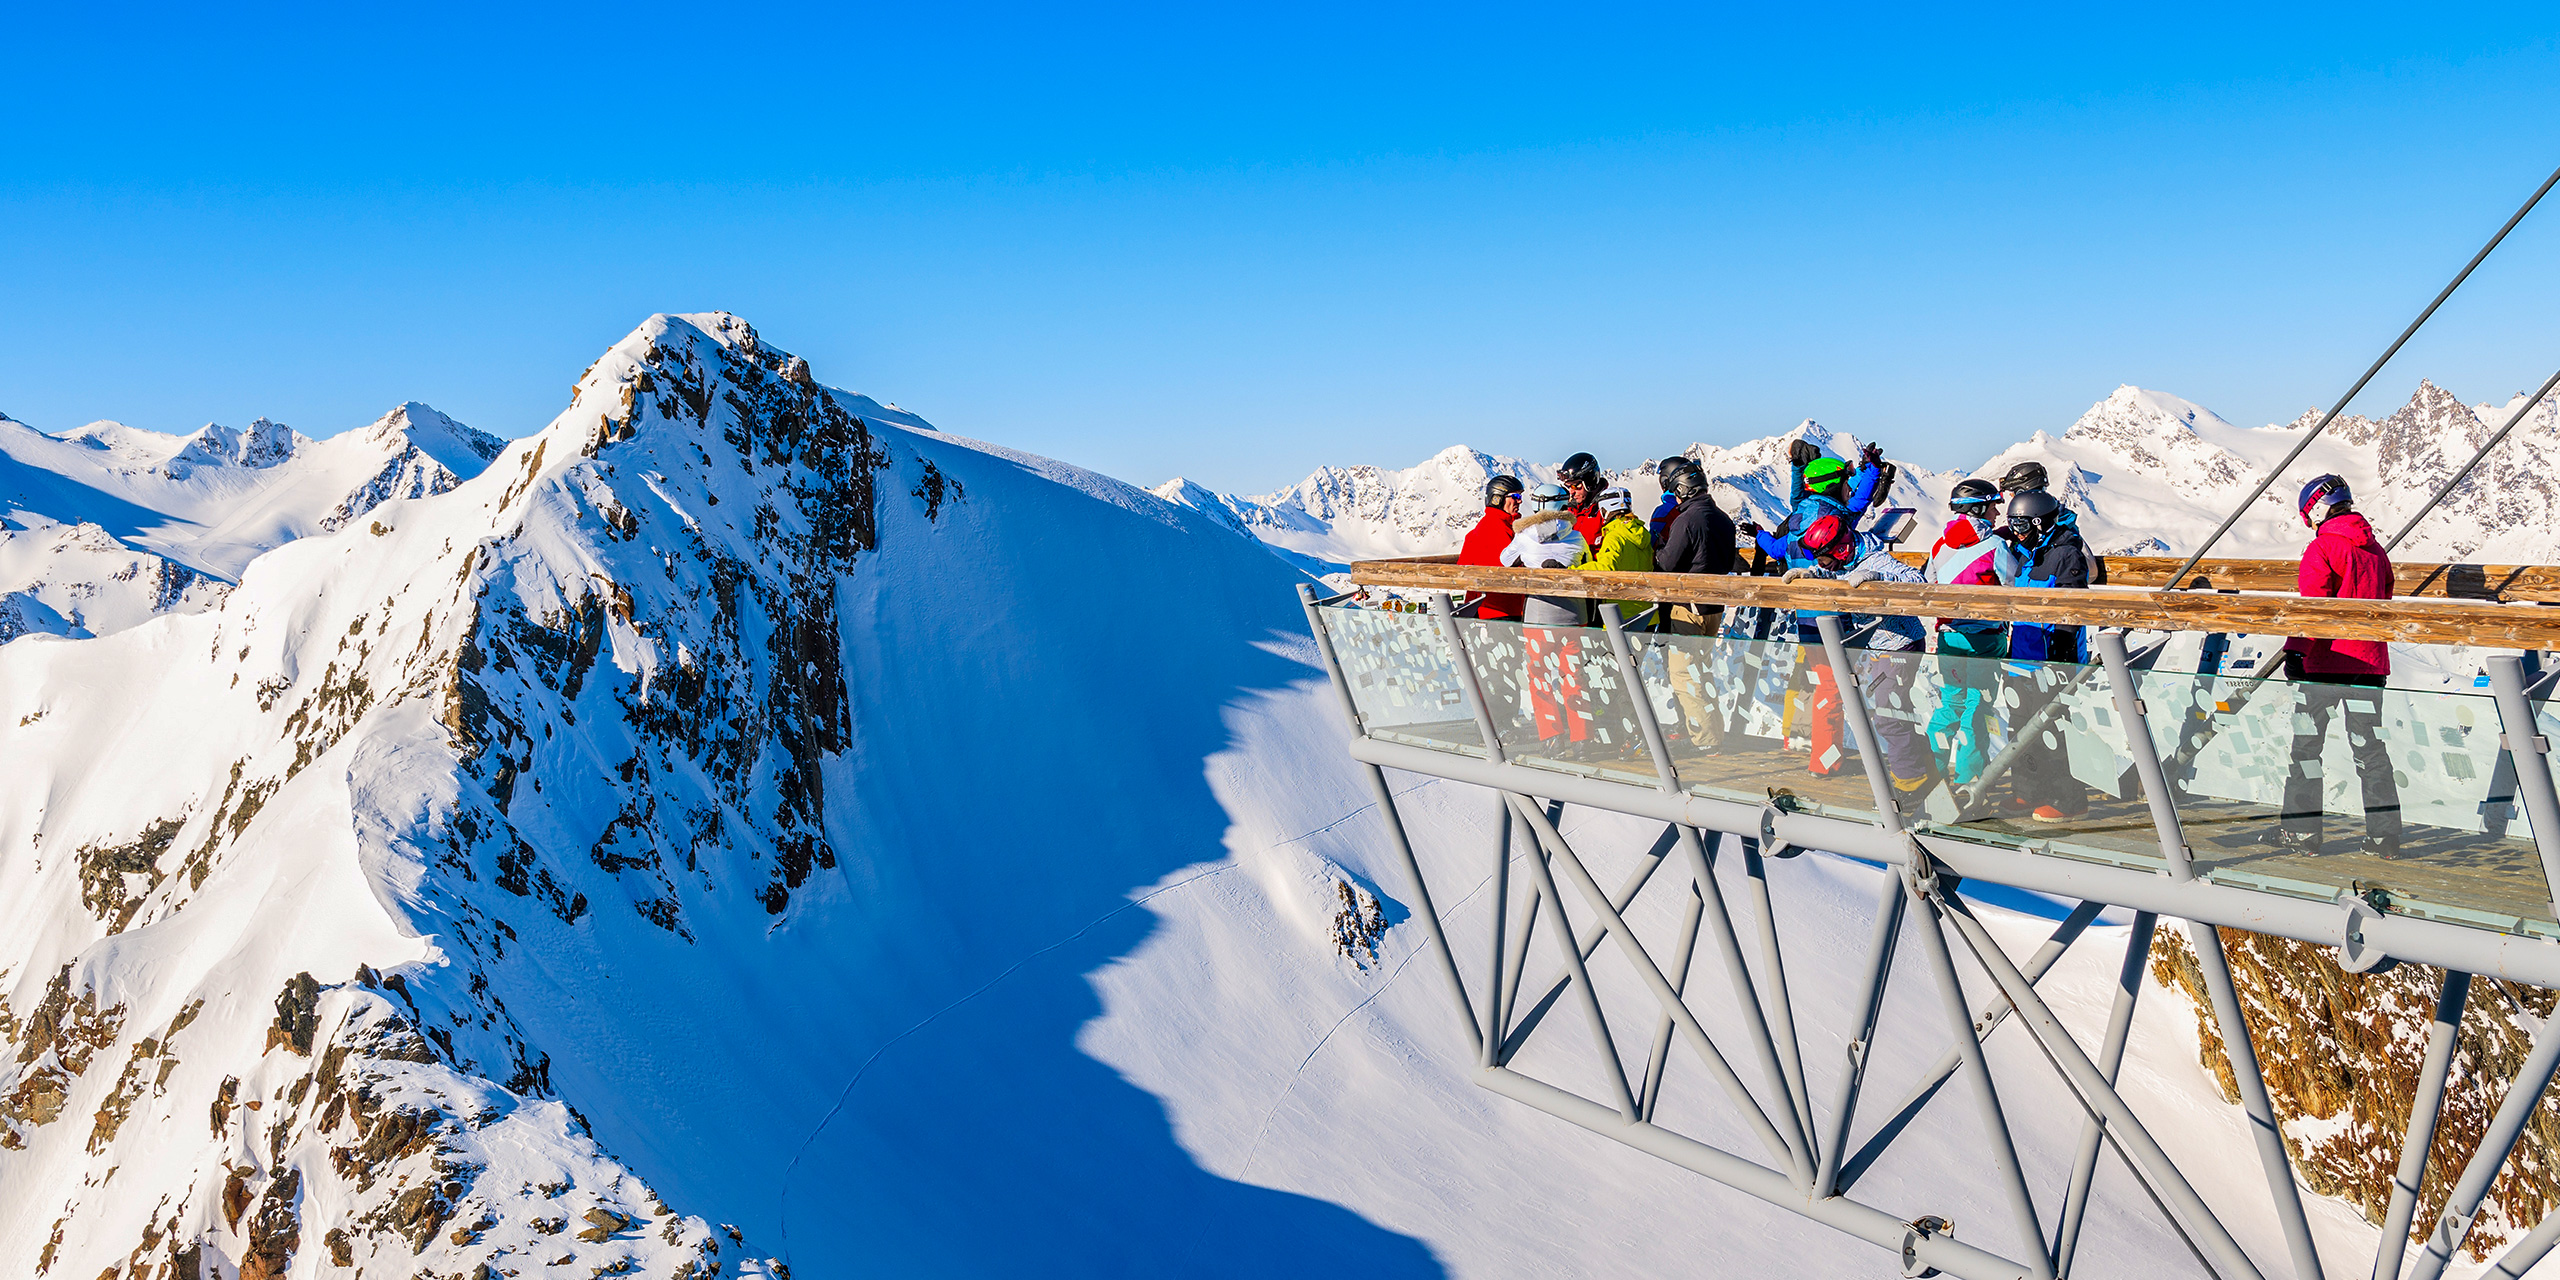 Skiers looking at mountains from platform in Solden ski ; Courtesy of Pawel Kazmierczak/Shutterstock